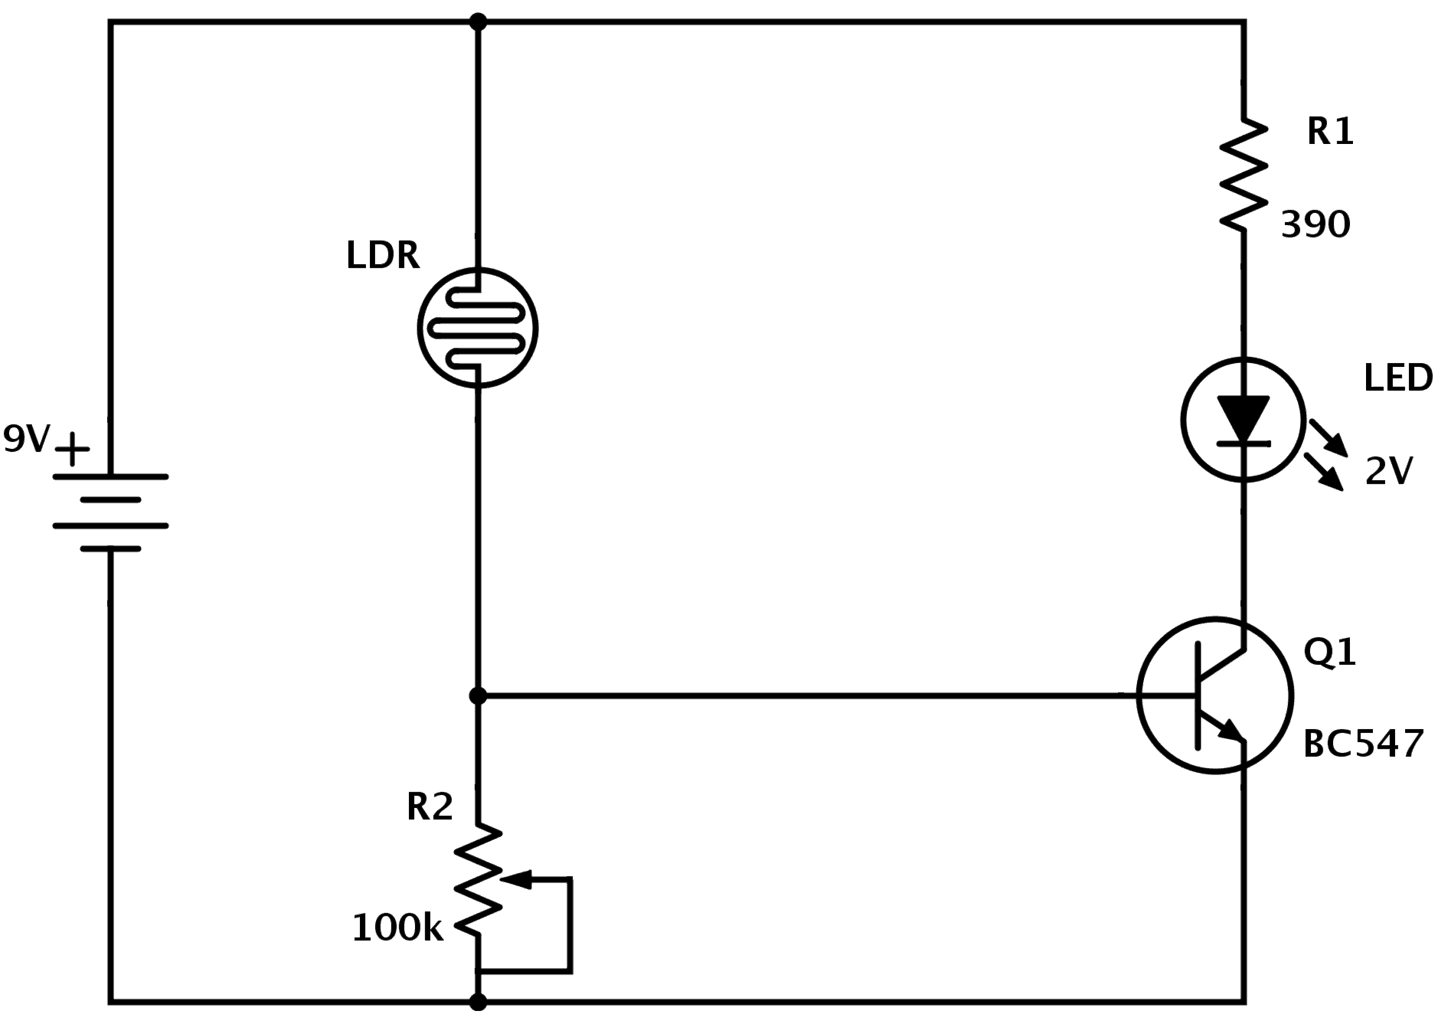 LDR circuit improved circuit diagram how to read and understand any schematic schematic circuit diagram at mifinder.co